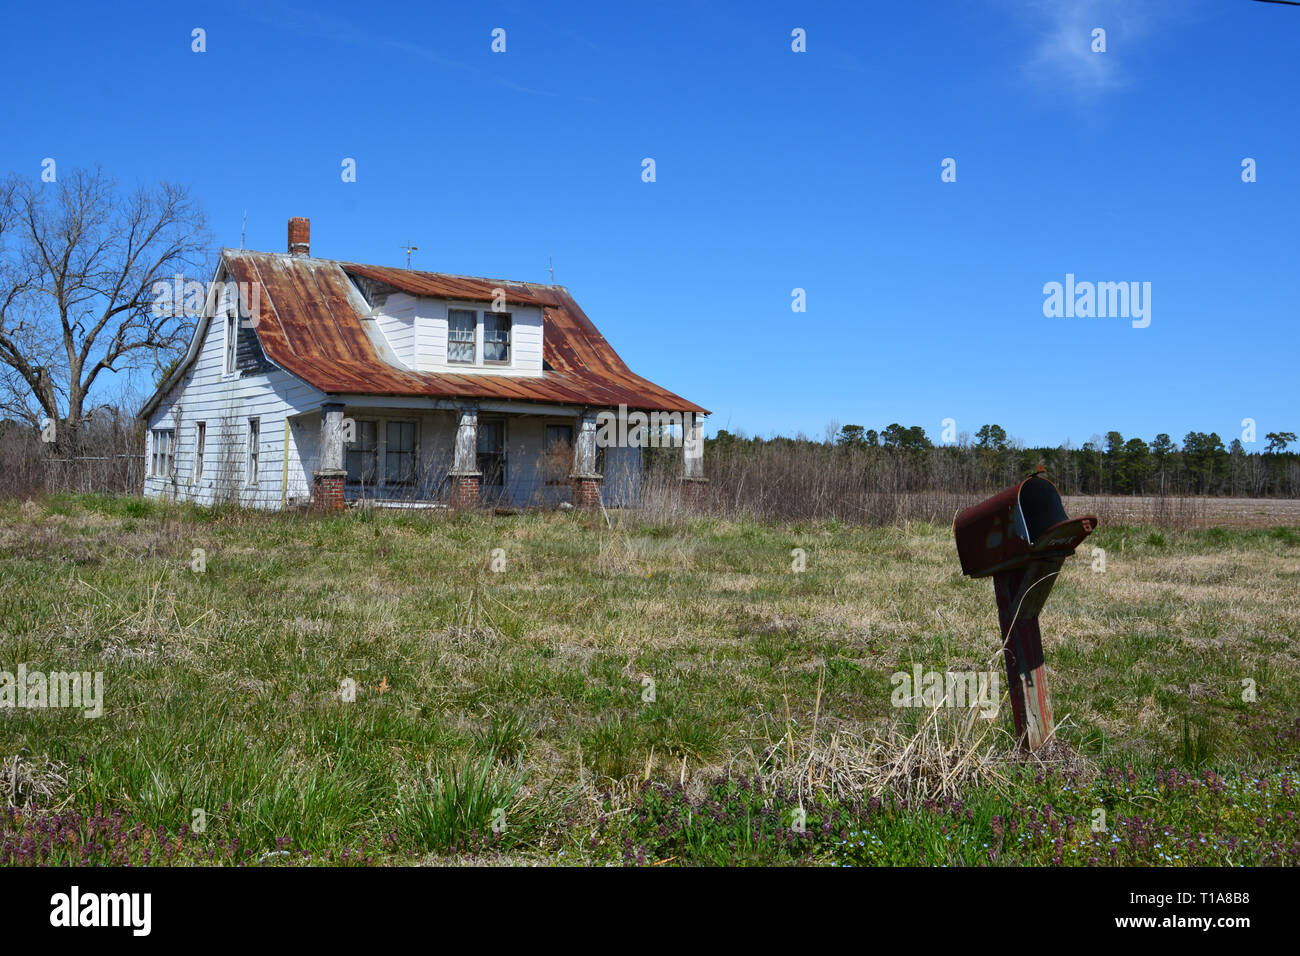 An abandoned home slowly rots on the back roads of Perquiman's County in eastern North Carolina. - Stock Image